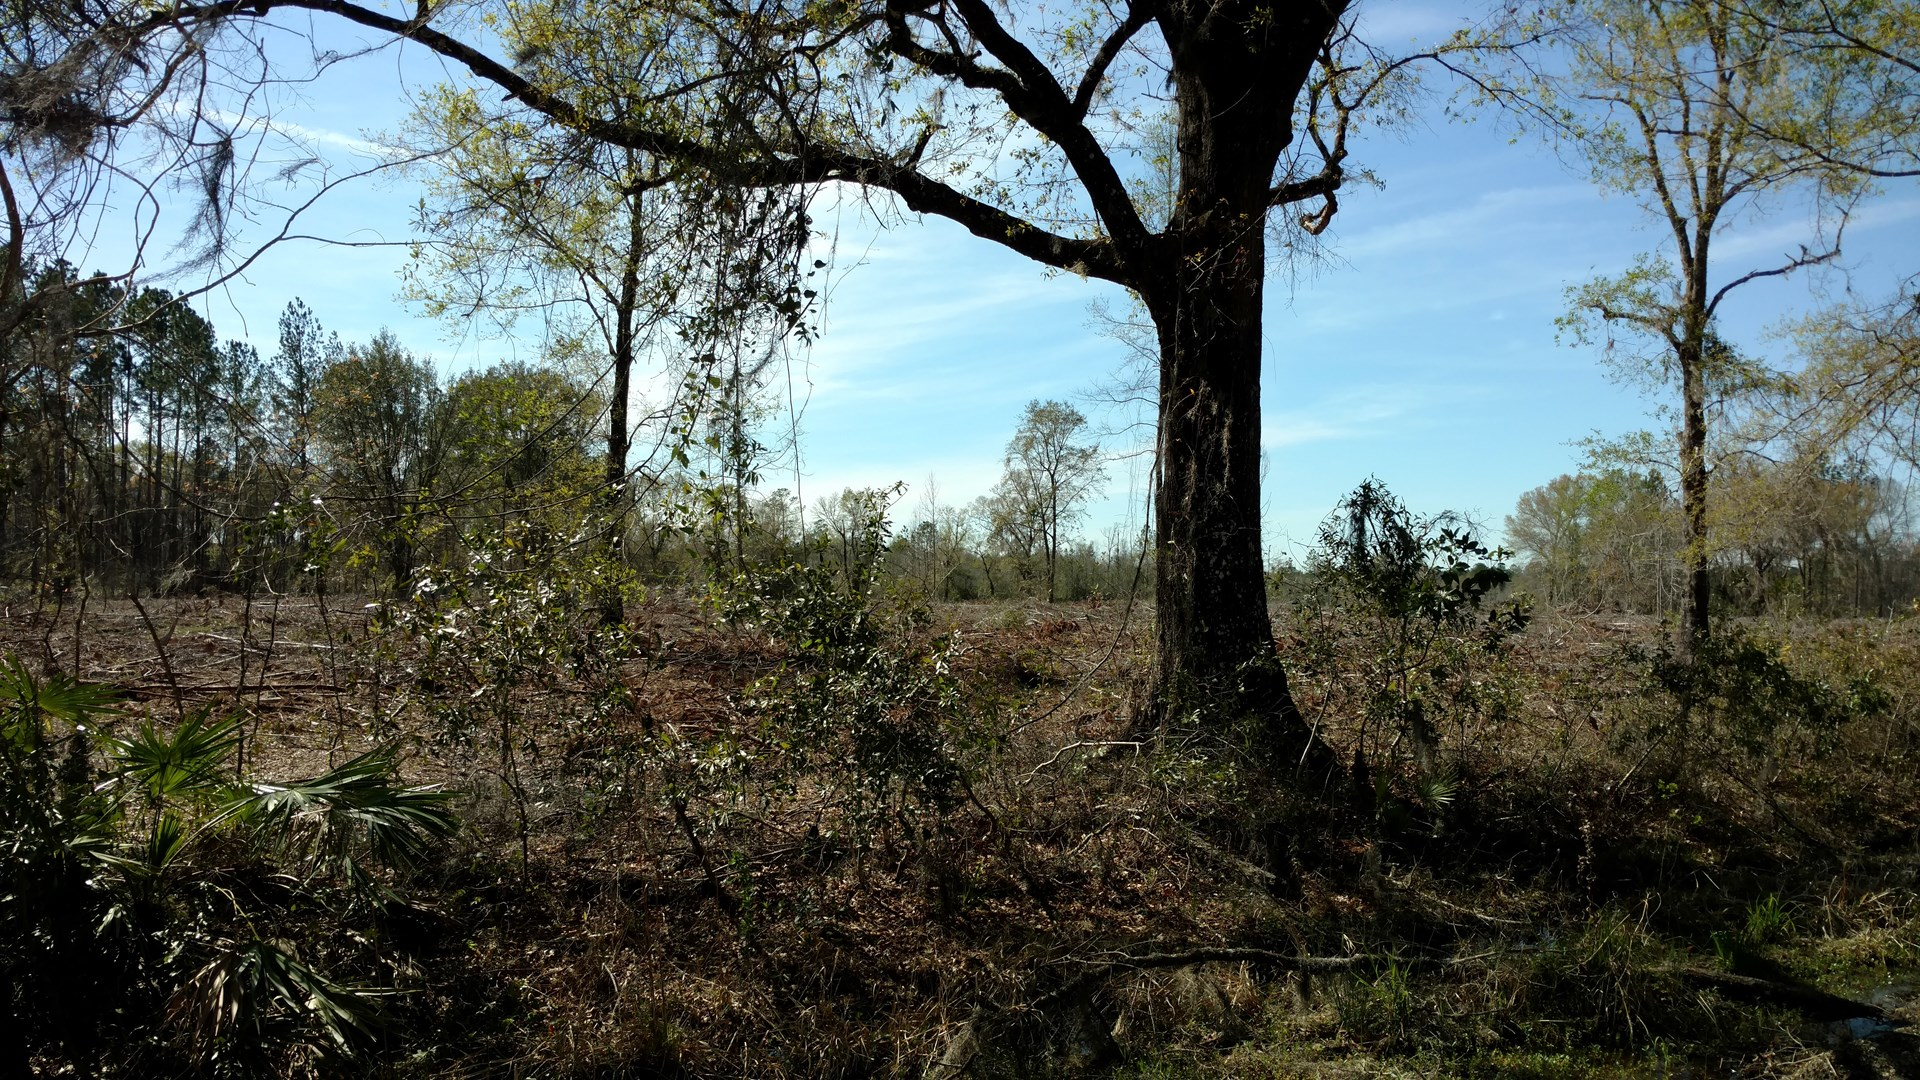 100 ACRES FOR SALE LAKE CITY FLORIDA